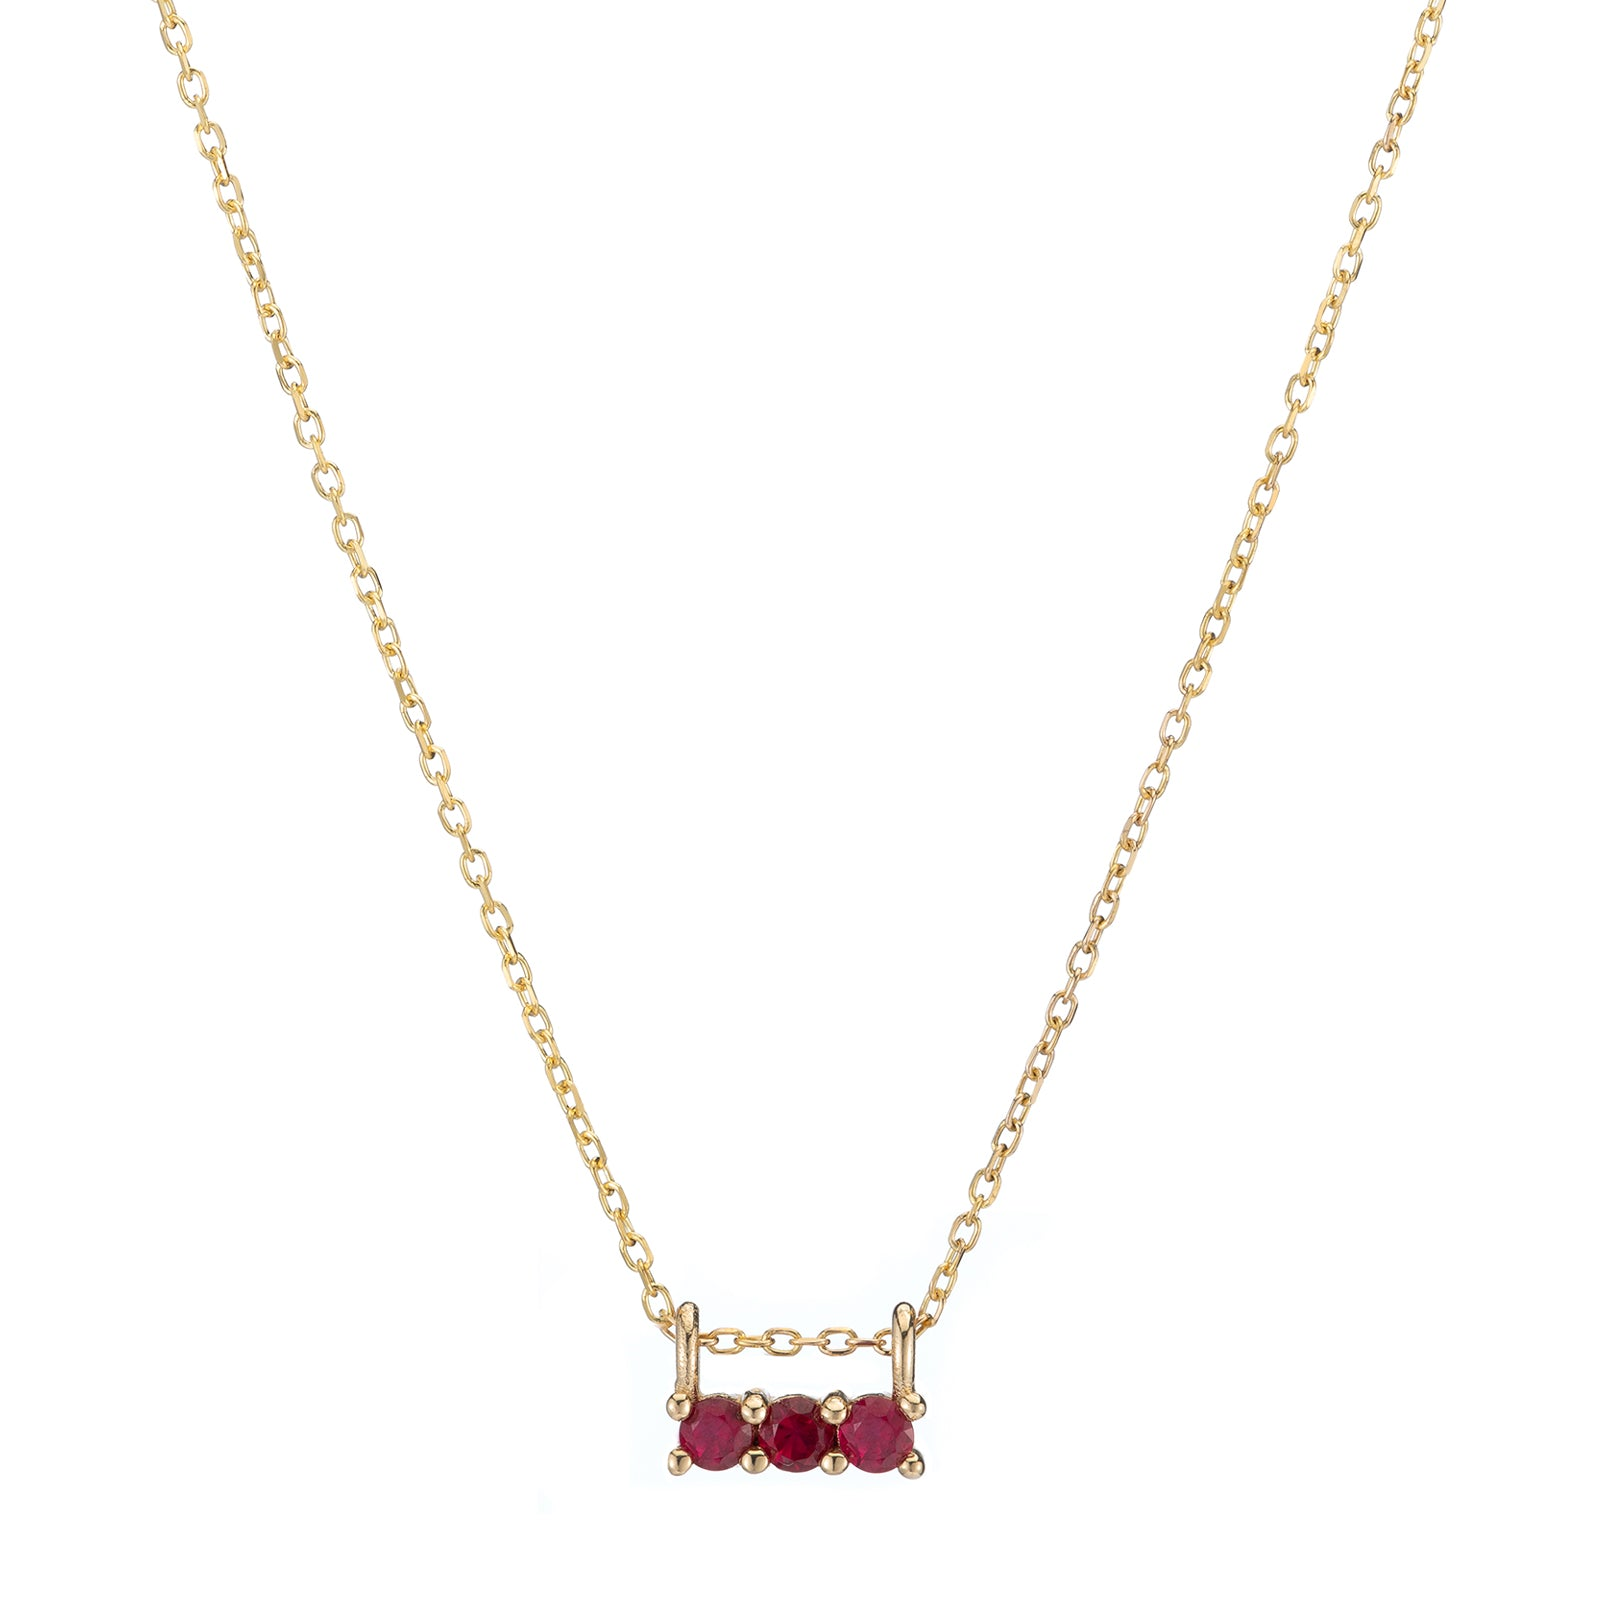 Jennie Kwon Three Stone Necklace - Ruby - Necklaces - Broken English Jewelry